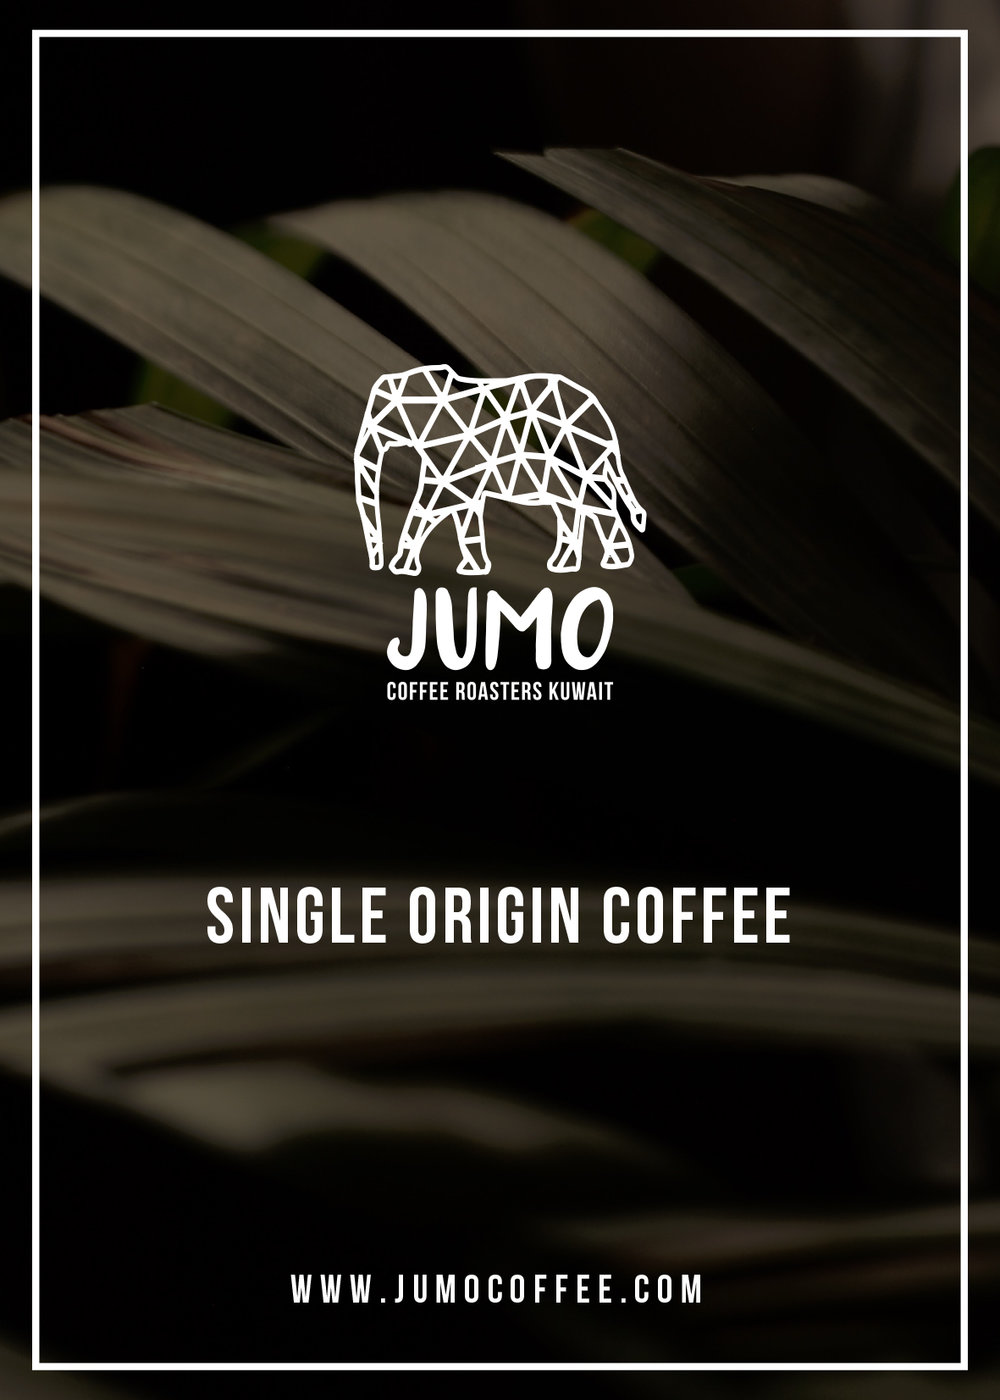 JUMO_COFFEE_BOOKLET New-1.jpg